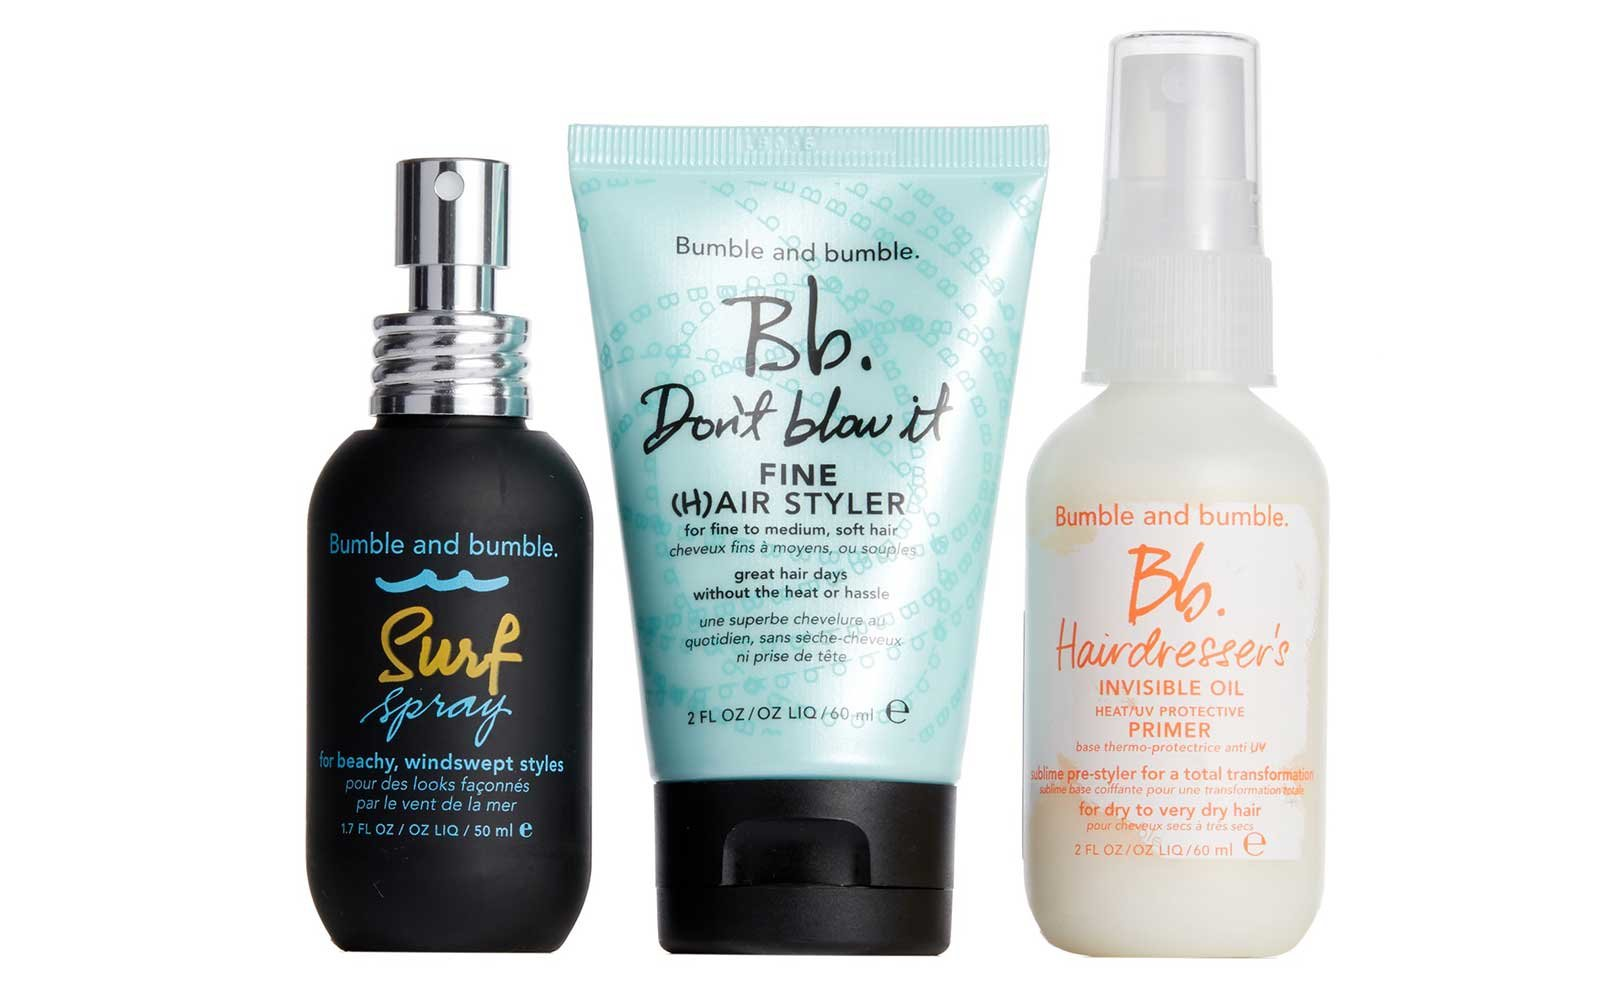 Bumble and bumble travel beauty set